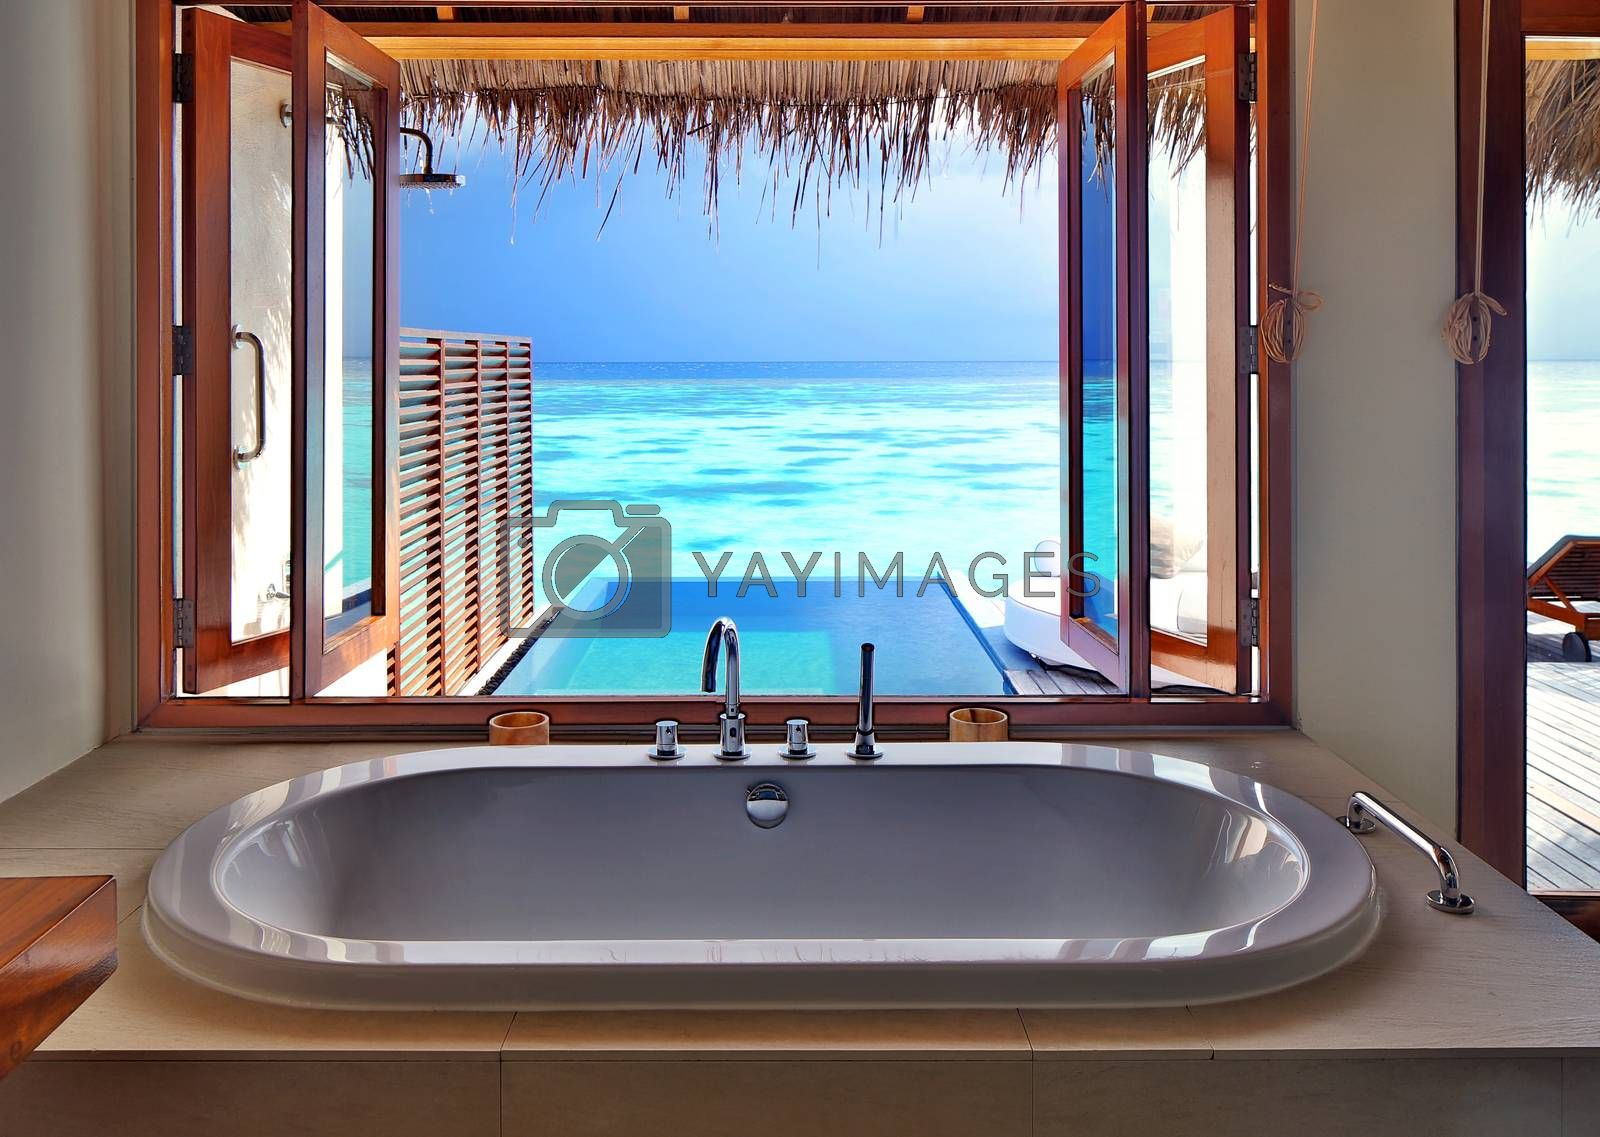 Royalty free image of Luxury interior on beach resort by Anna_Omelchenko